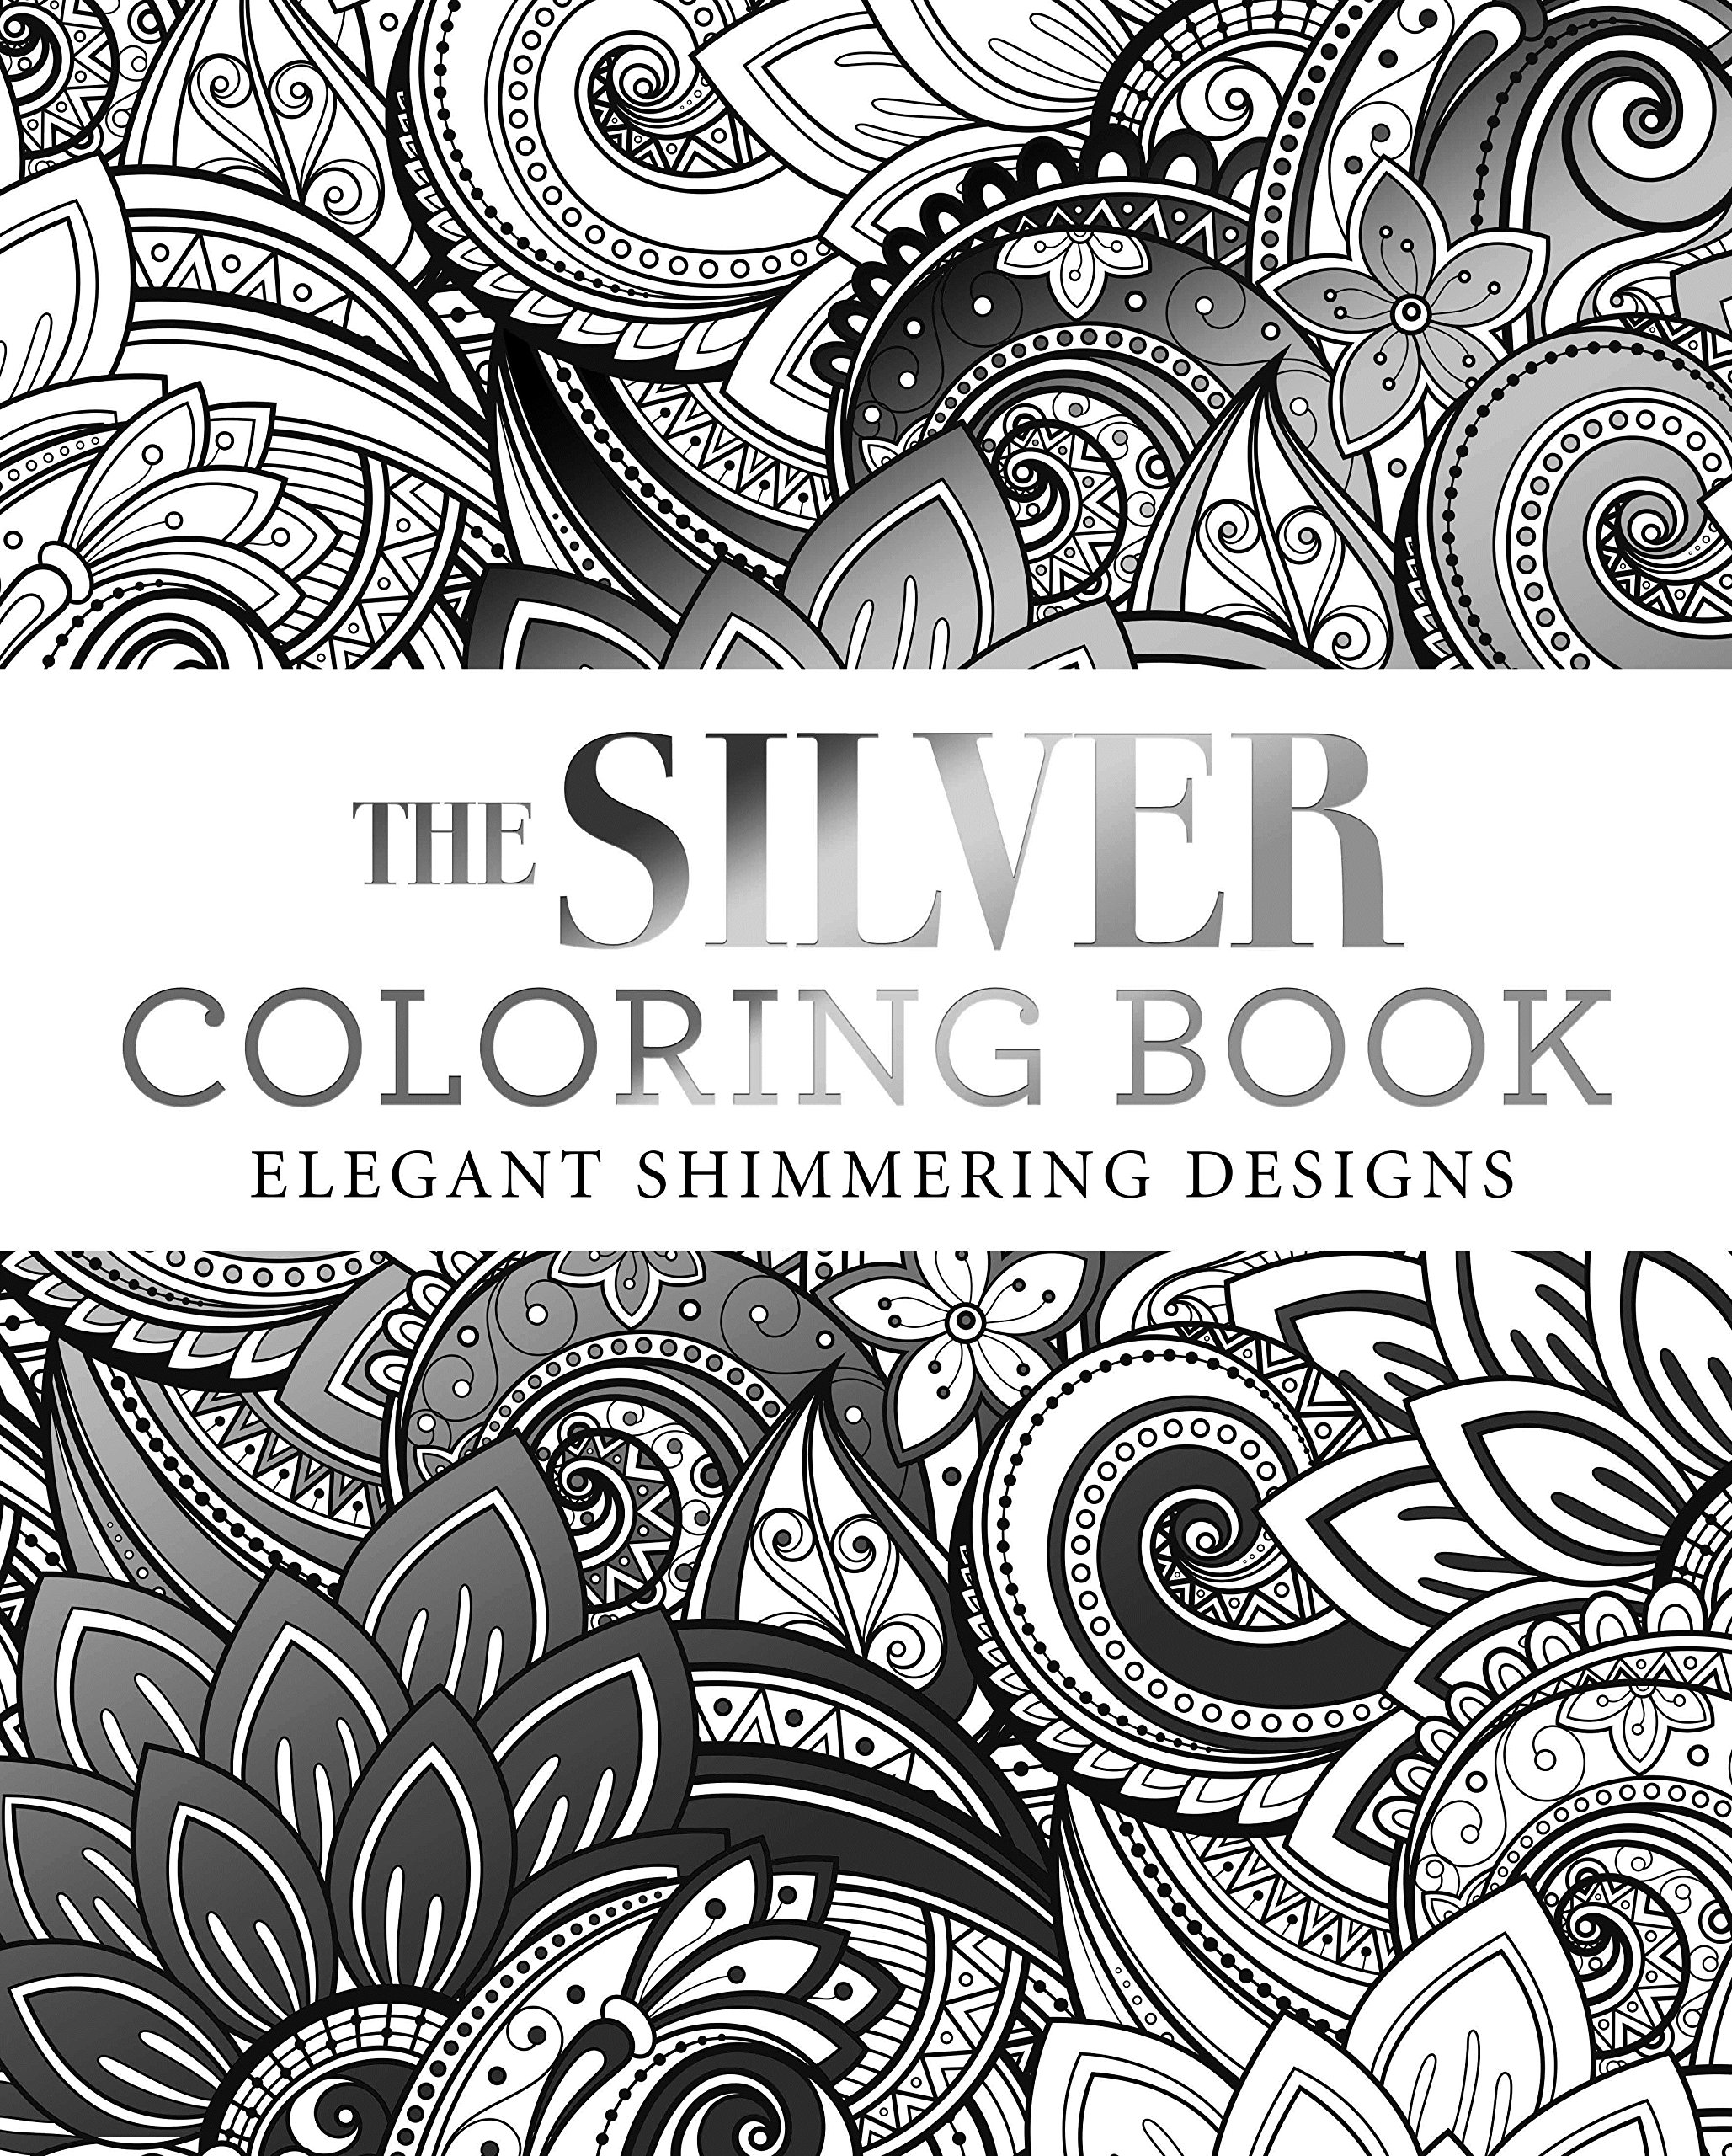 Coloring book download zip - Amazon Com The Silver Coloring Book 9781784284480 Arcturus Publishing Books